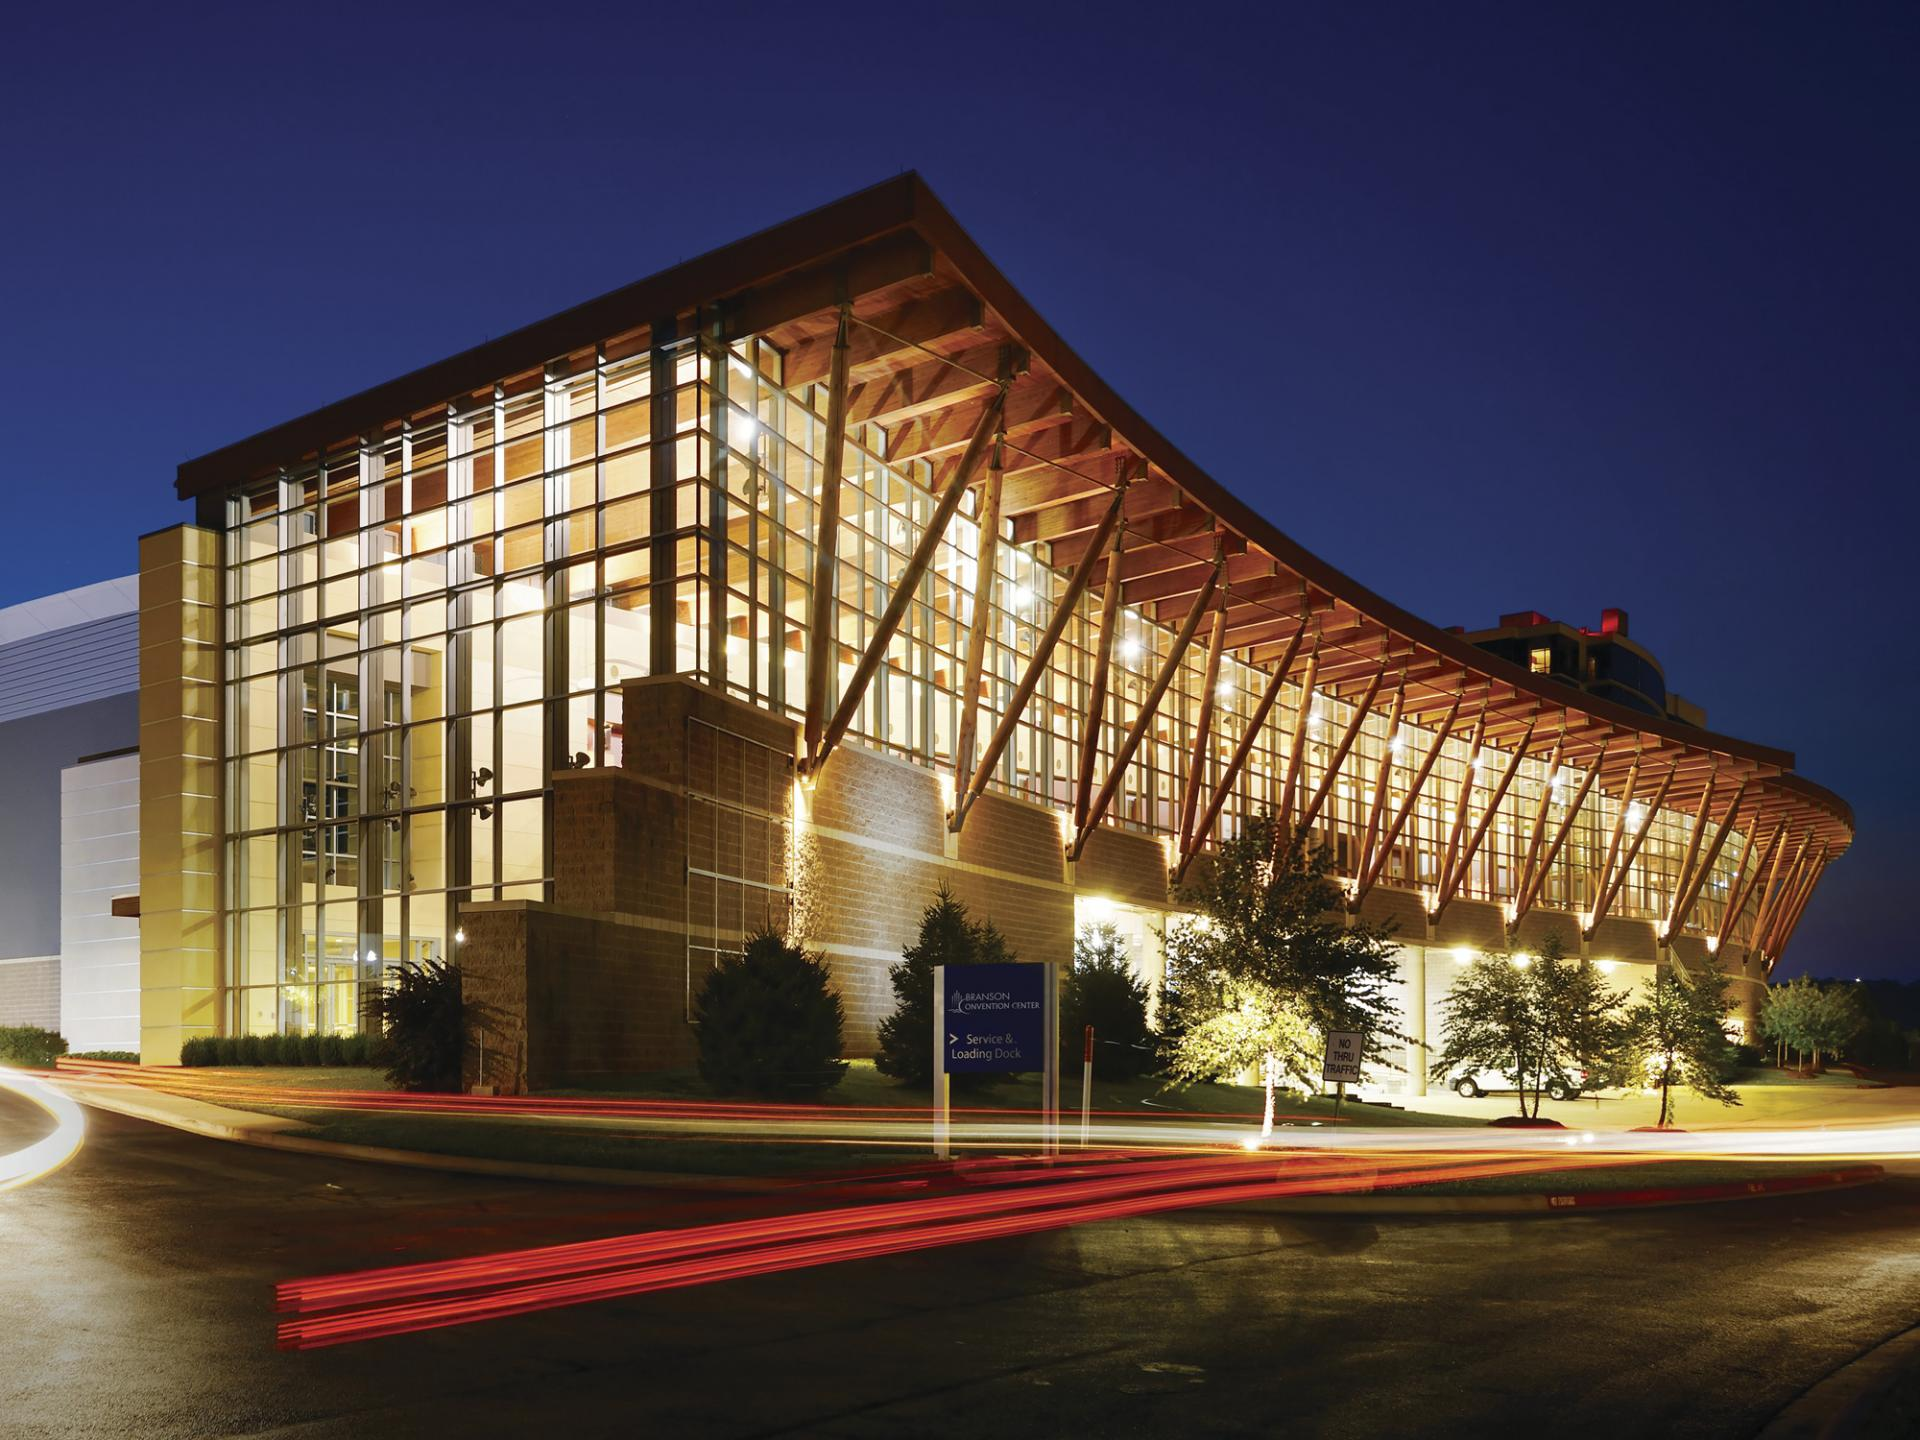 Branson Convention Center exterior at night.